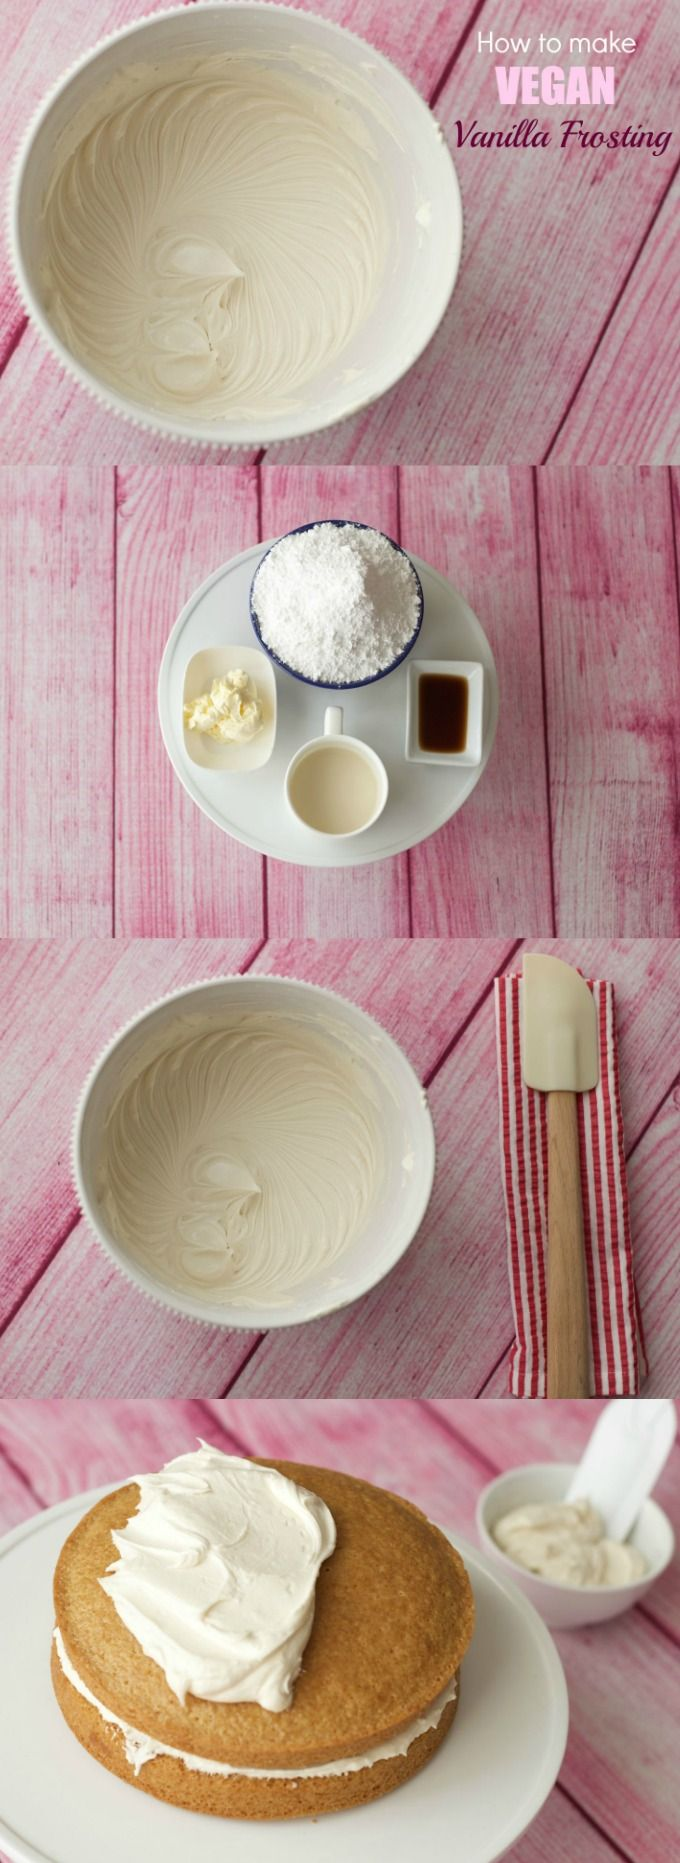 Smooth and creamy vegan vanilla frosting recipe - ideal for cakes, cupcakes and cookies! #vegan